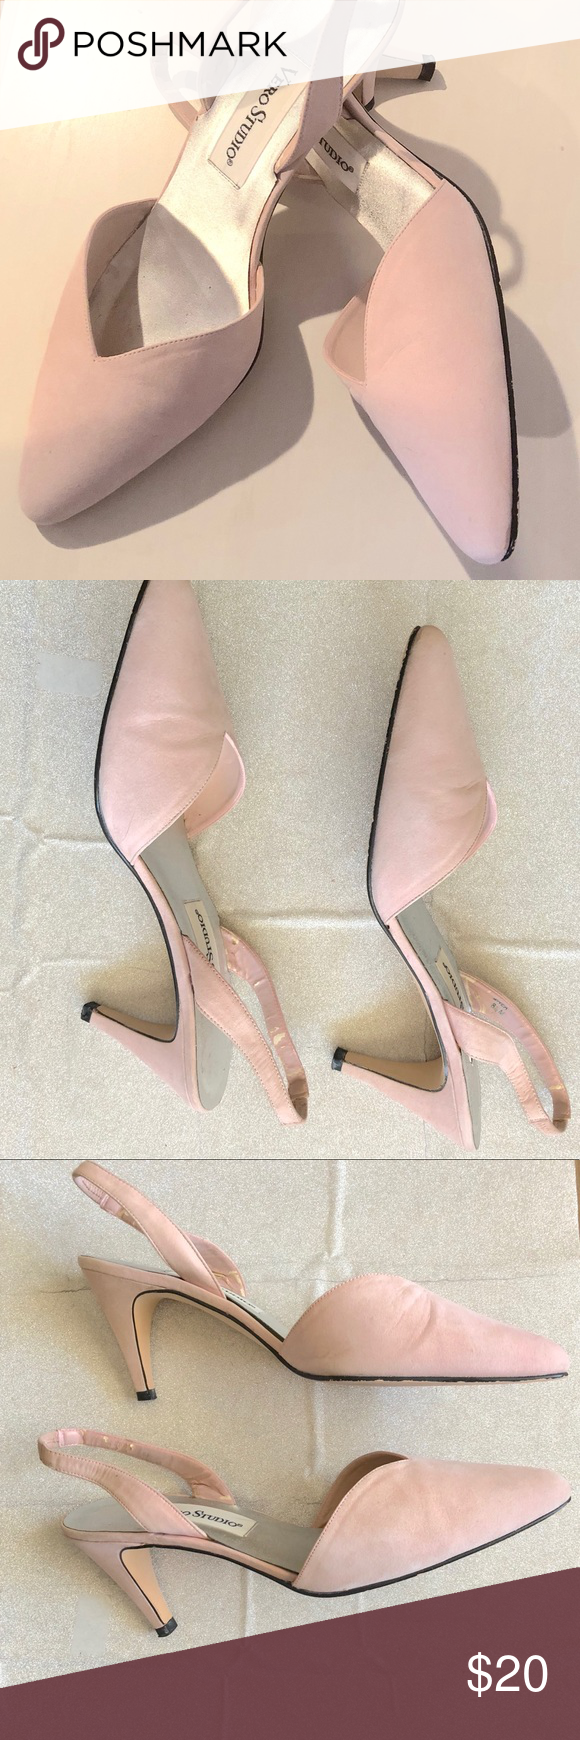 Suede Sling Backs With Kitten Heel Euc Suede Sling Backs With Kitten Heel Color Is A Very Pale Pink No Marks Stains Tears Or R My Posh Closet Kitte